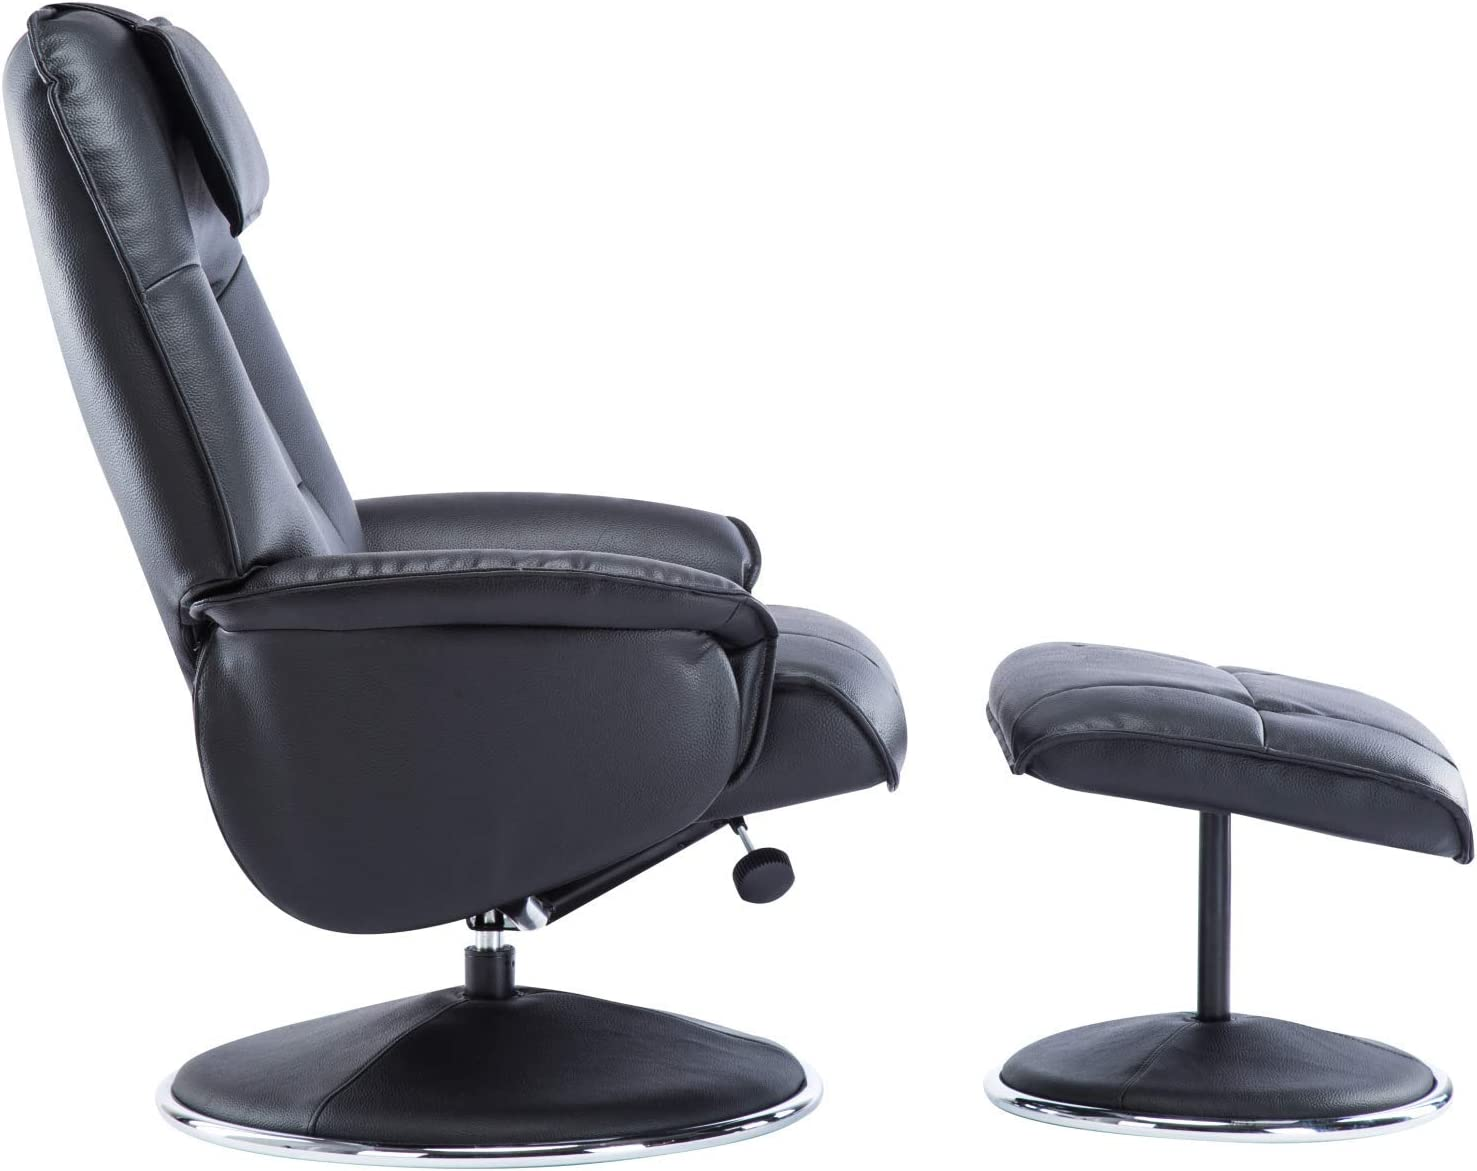 The Avant Garde Plush Leather Swivel Recliner Chair /& Matching Footstool in Earth